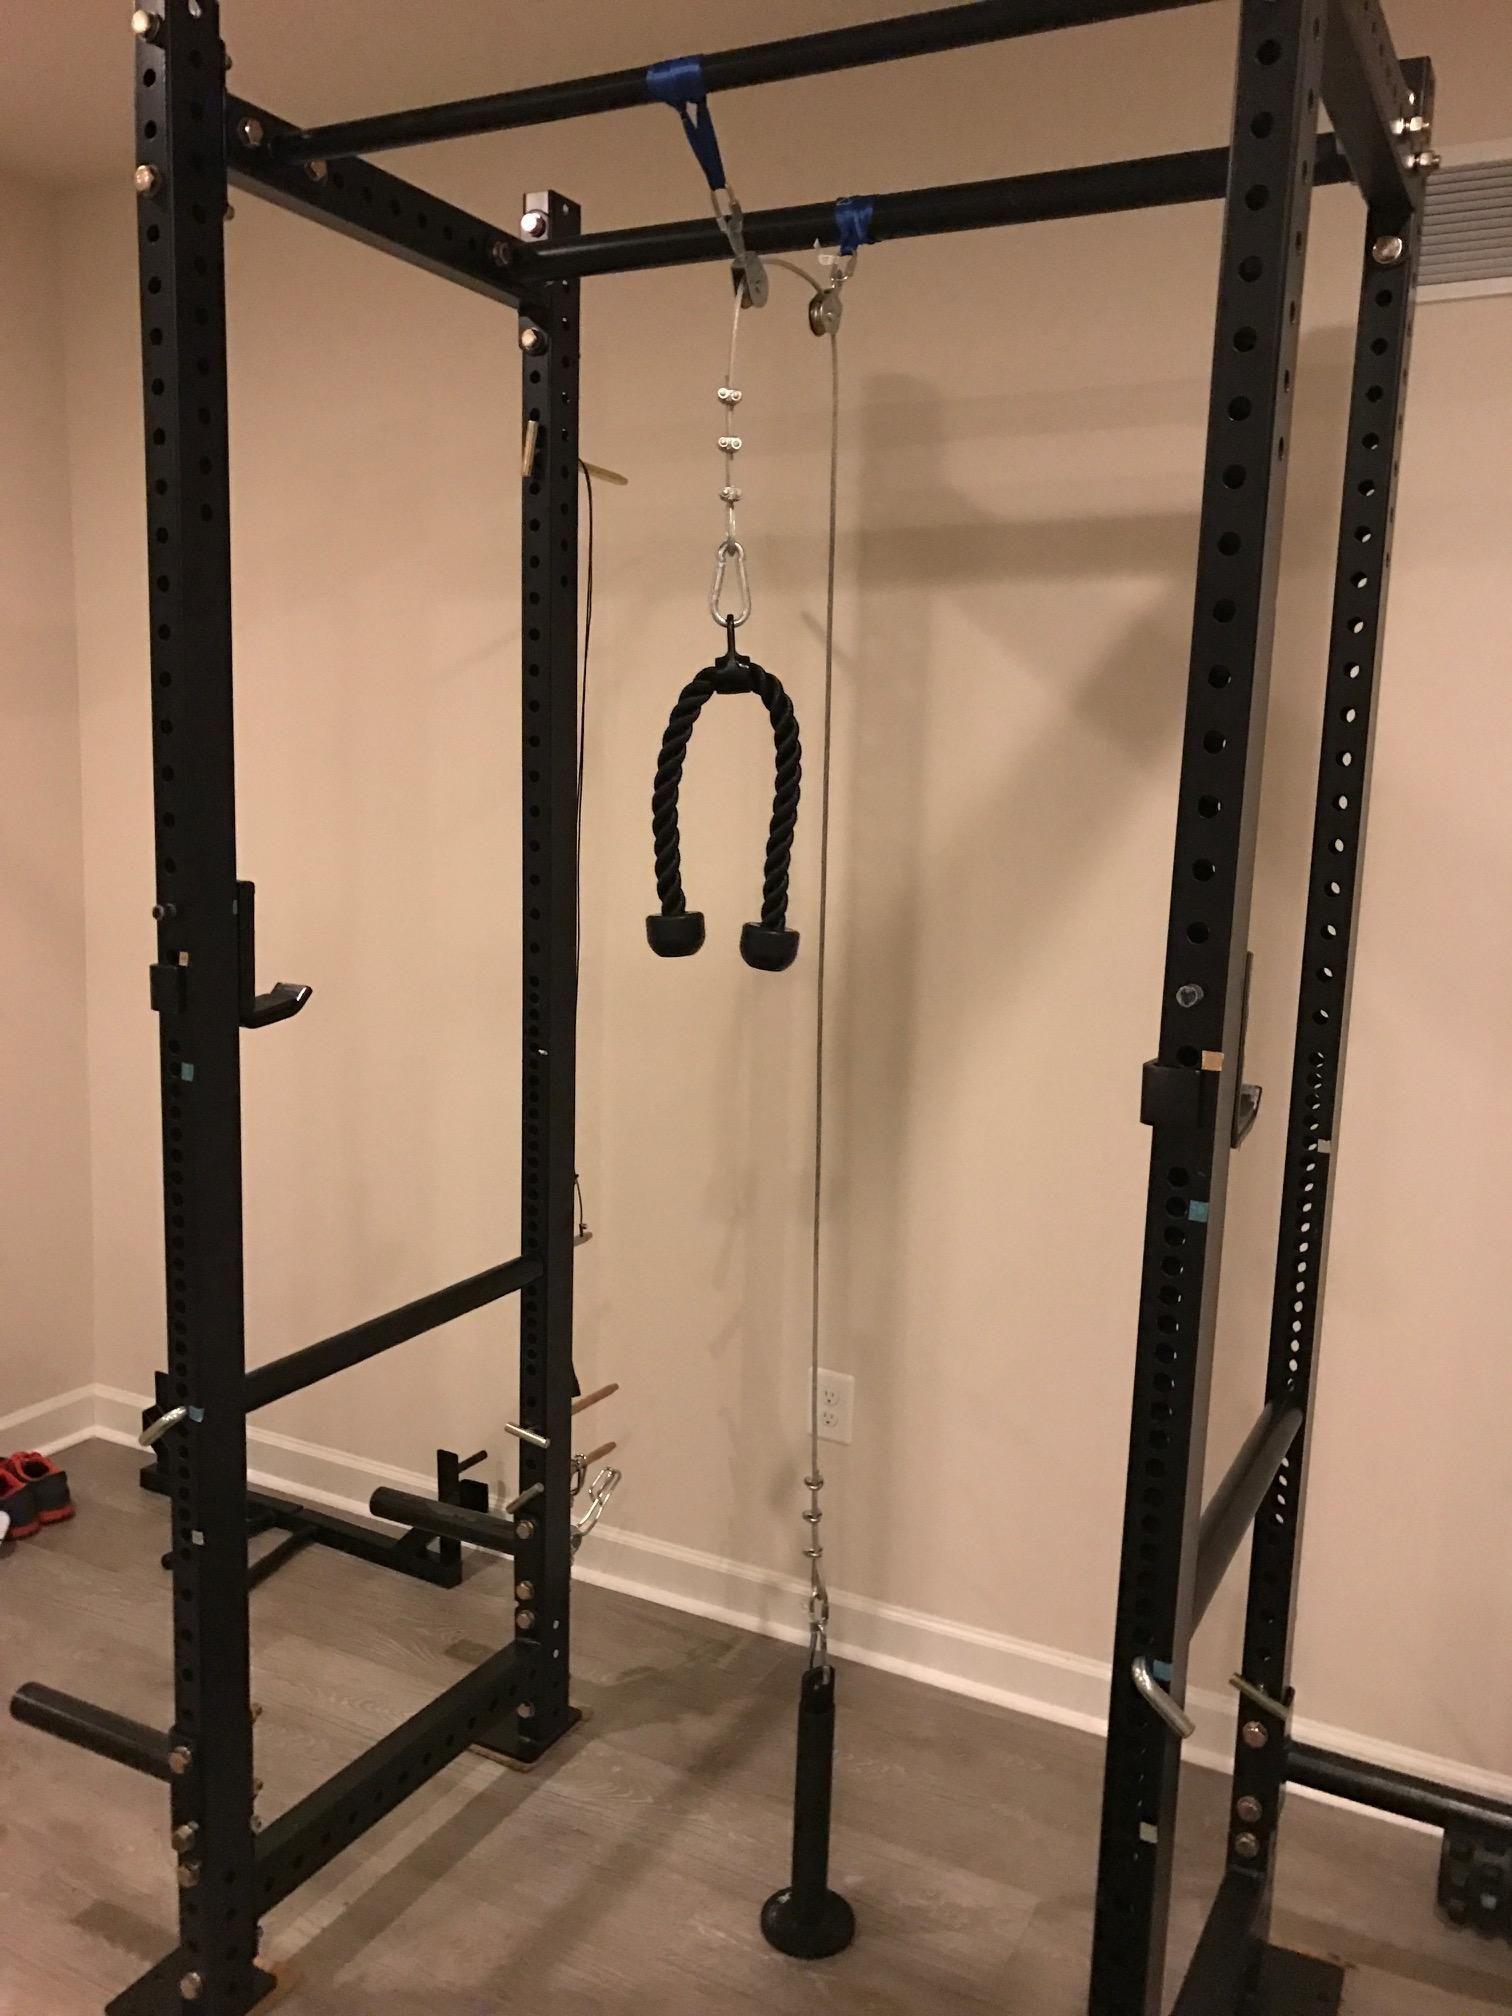 cage barbell free utility cap bench and exercise reviewed pro amazoncom design stand standing deluxe titan squat power rack